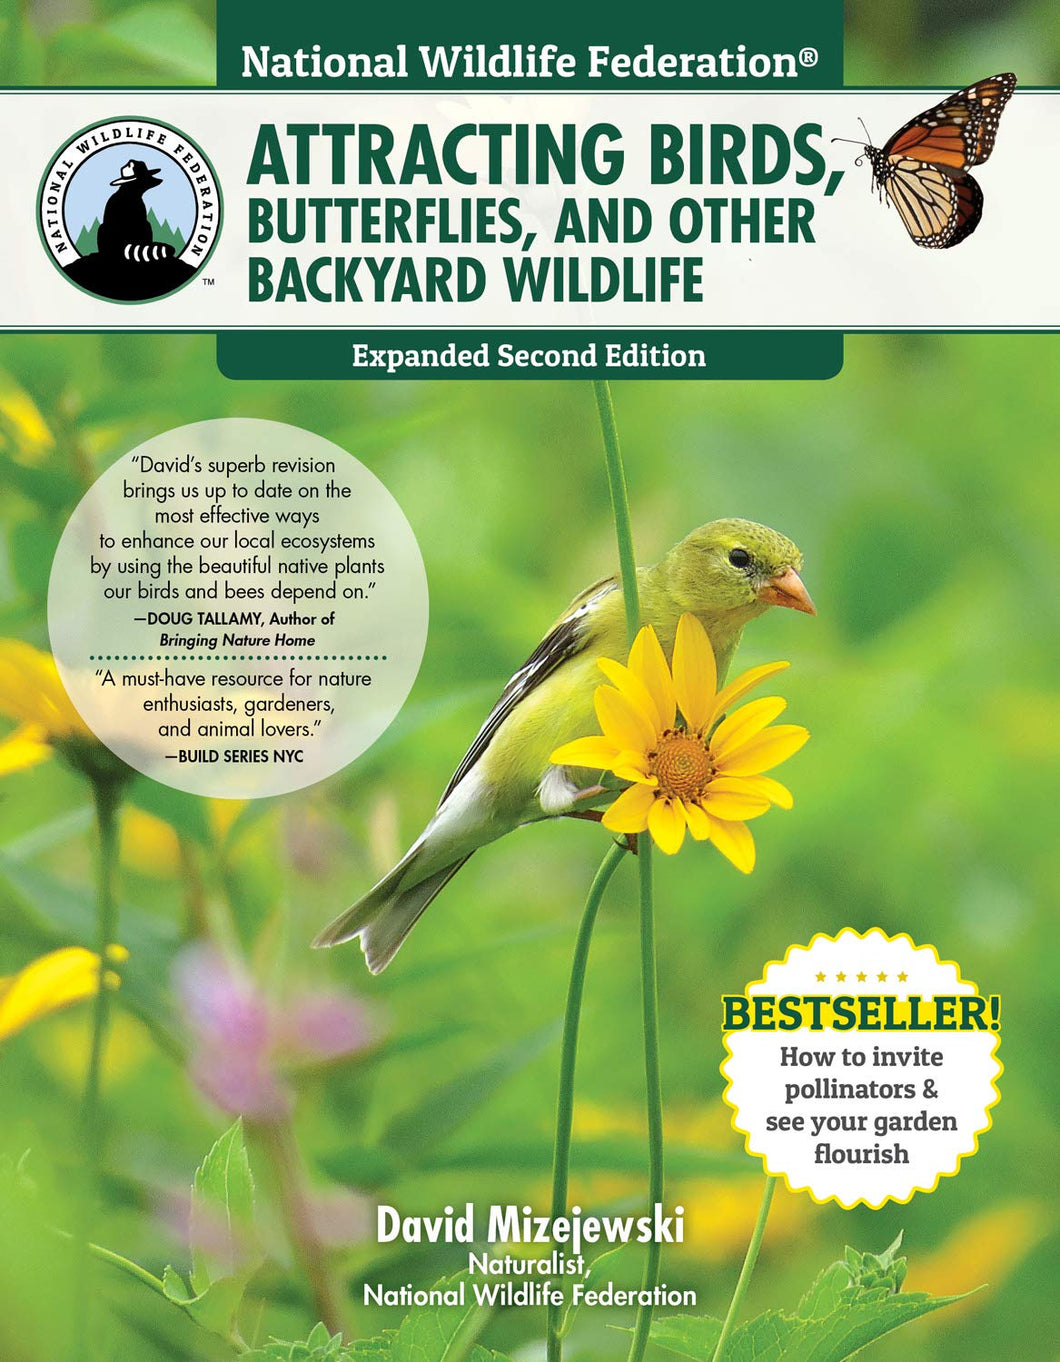 Attracting Birds, Butterflies, & Other Backyard Wildlife - David Mizejewski